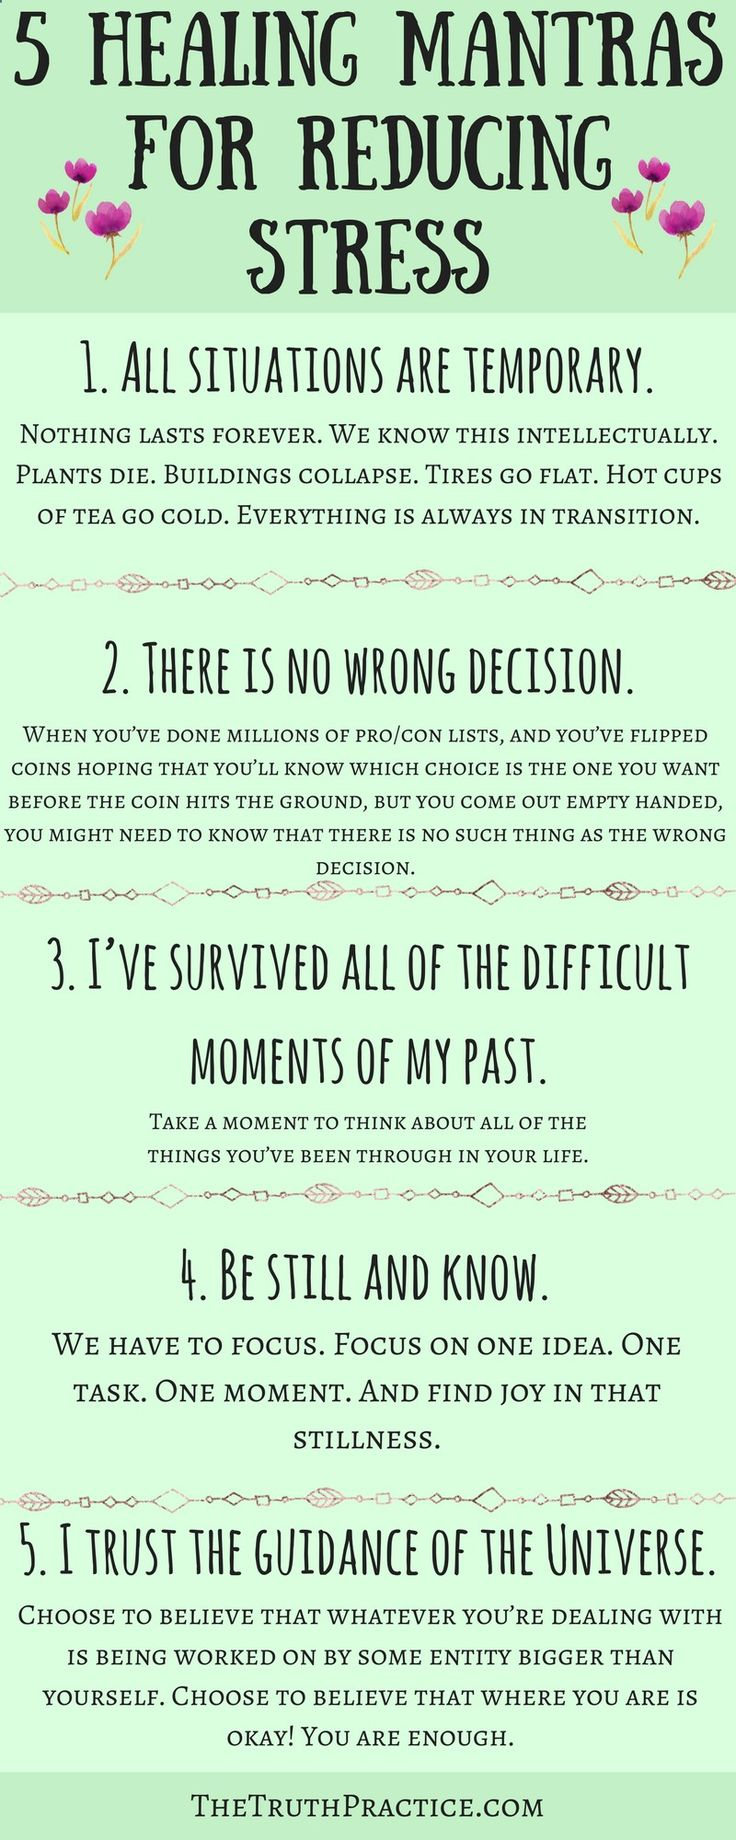 Best Quotation For Life Quotes About Life Click The Pin To Read All 10 Healing Mantras